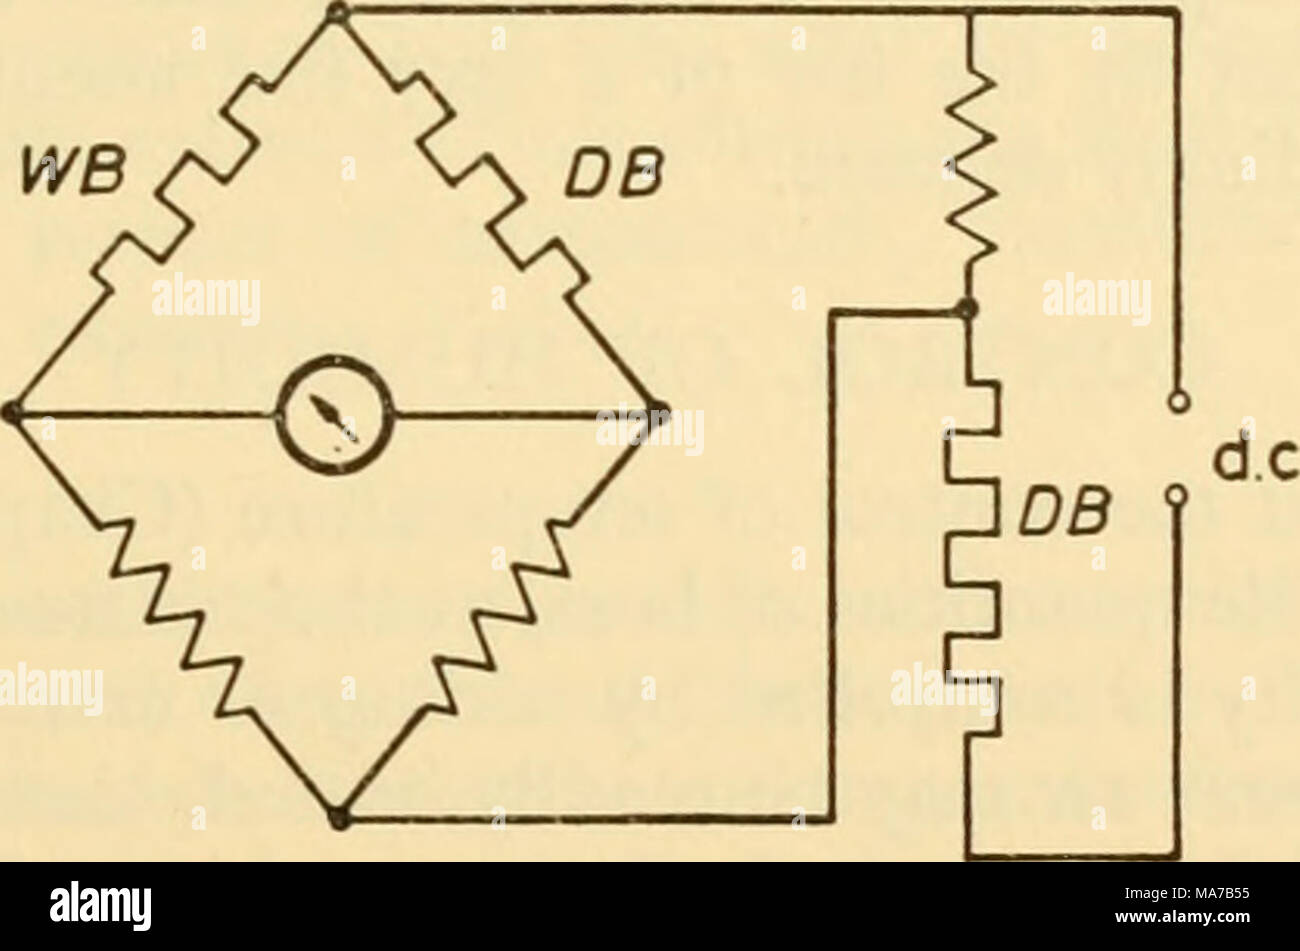 Resistance Thermometer Stock Photos Wiring Diagram Electronic Apparatus For Biological Research Figure 302 Schematic Layout Controlling The Voltage On